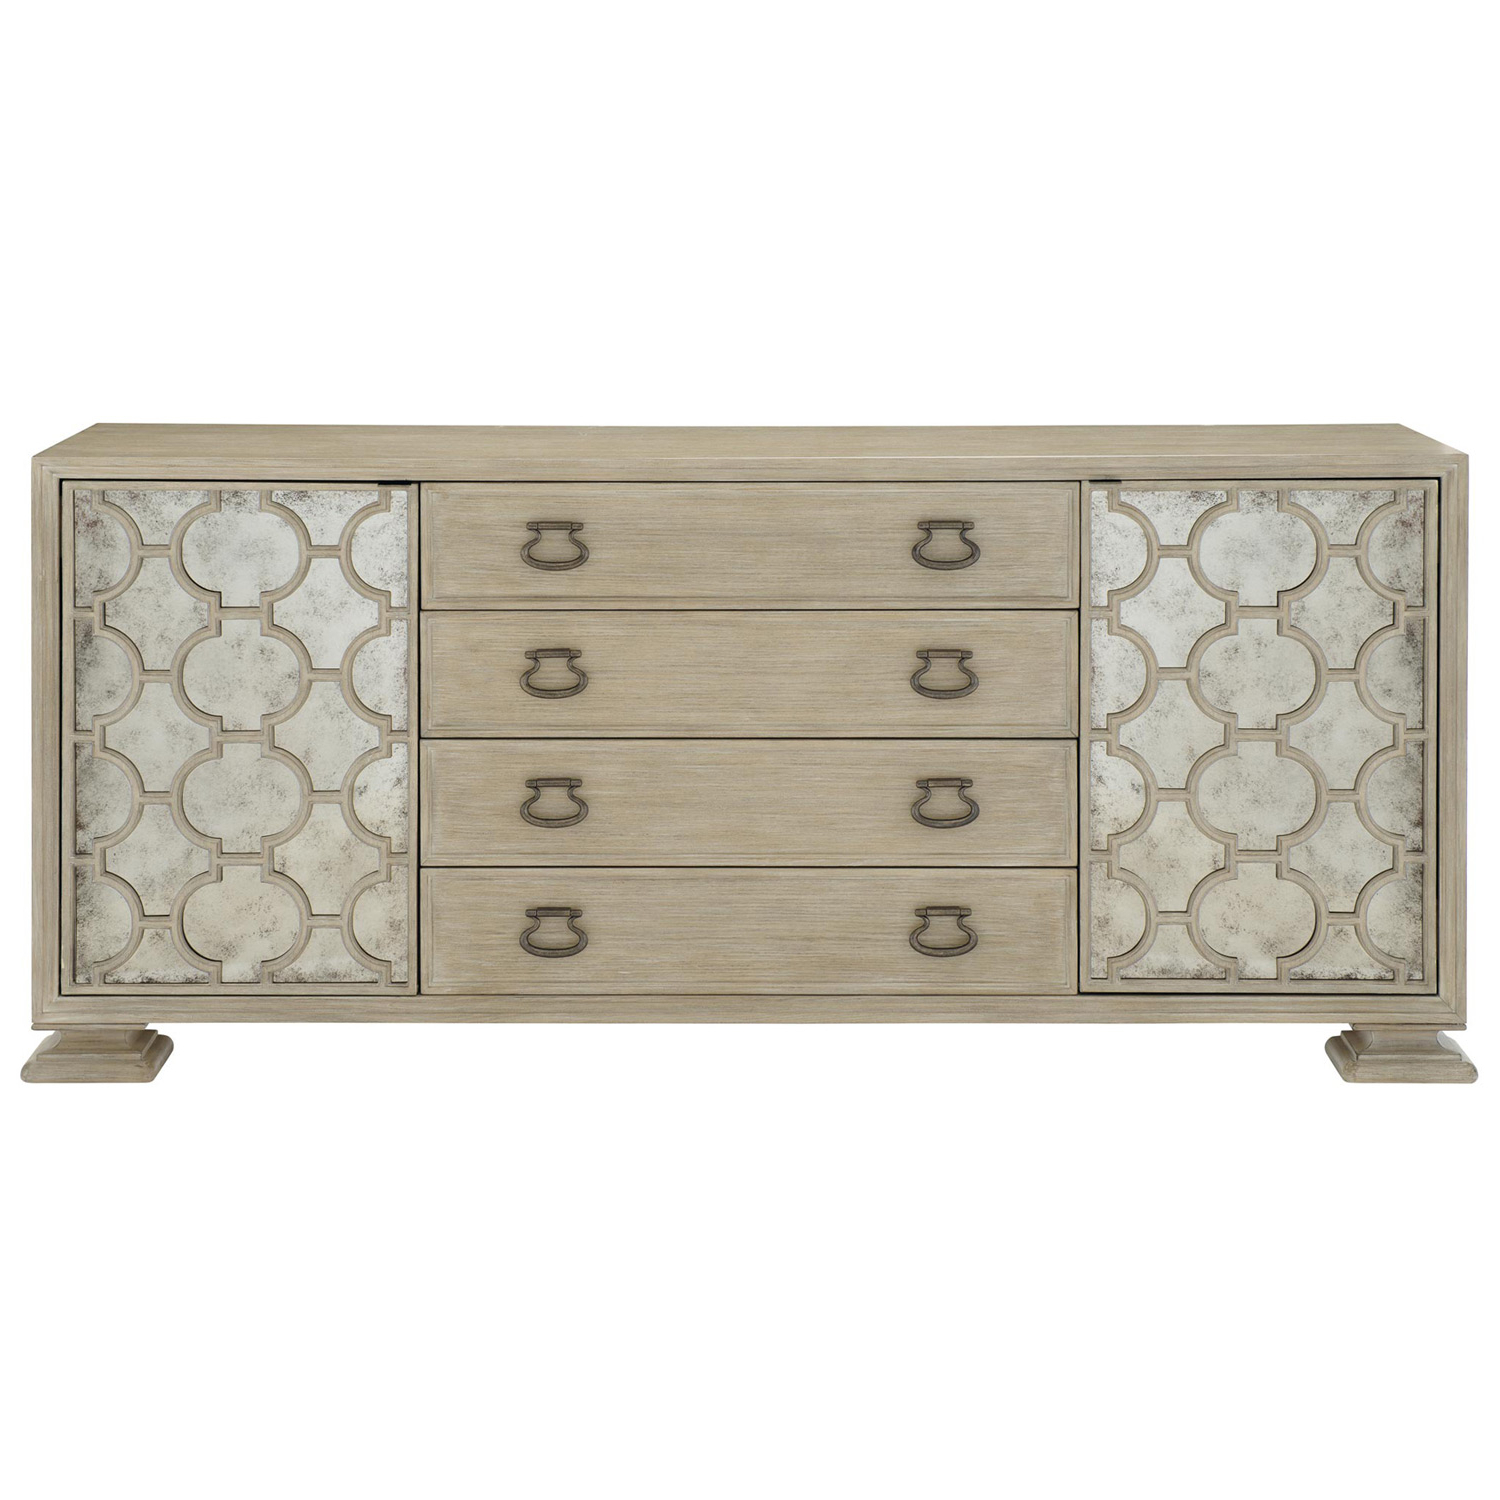 Kathy Kuo Home Intended For Newest Aged Brass Sideboards (Gallery 16 of 20)